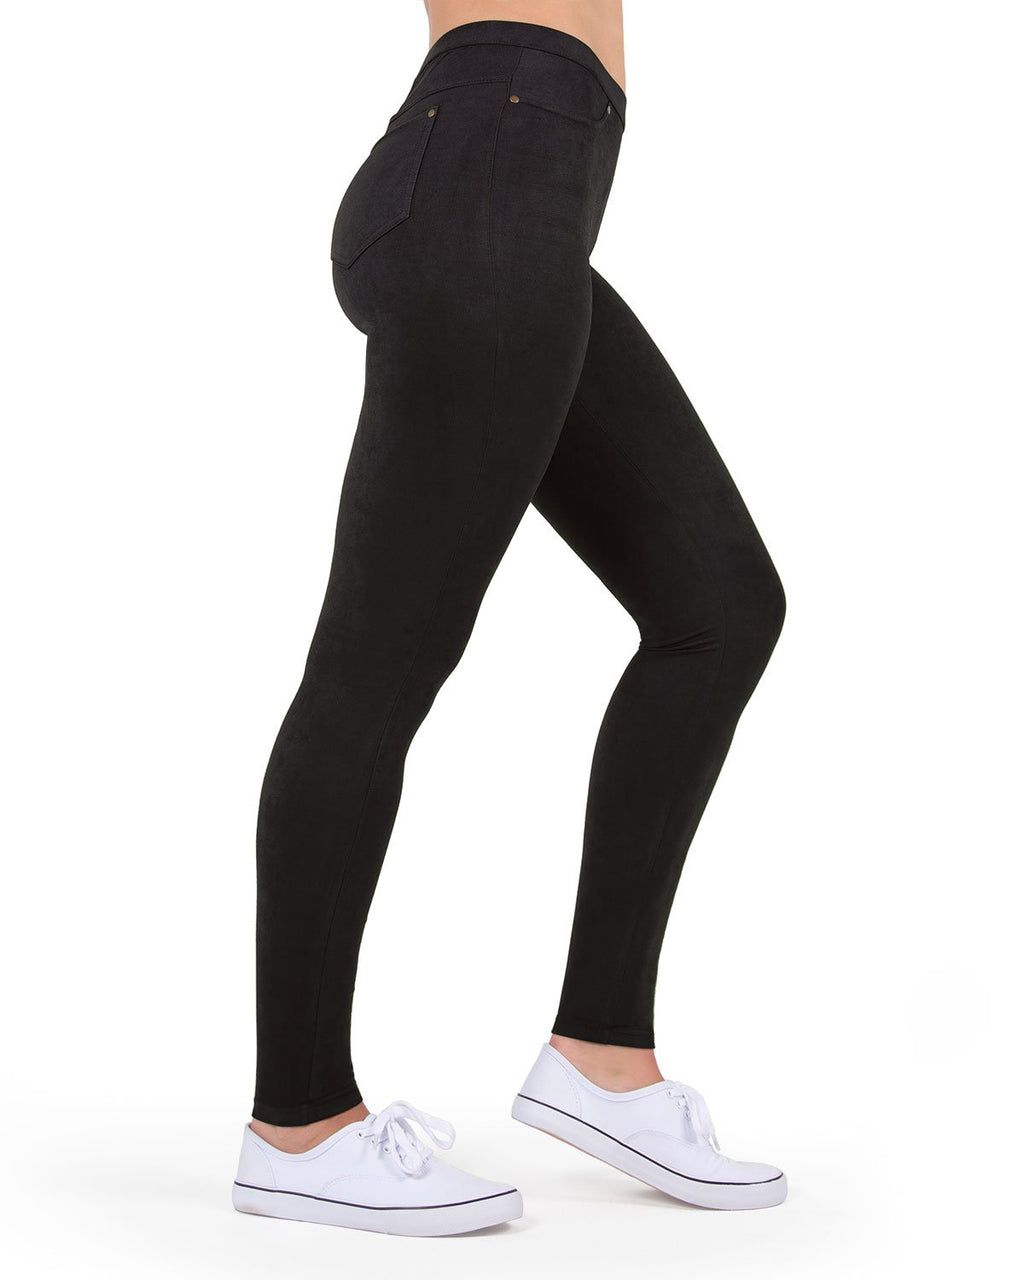 MeMoi Black Microsuede Legging | Women's Premium Fashion Leggings